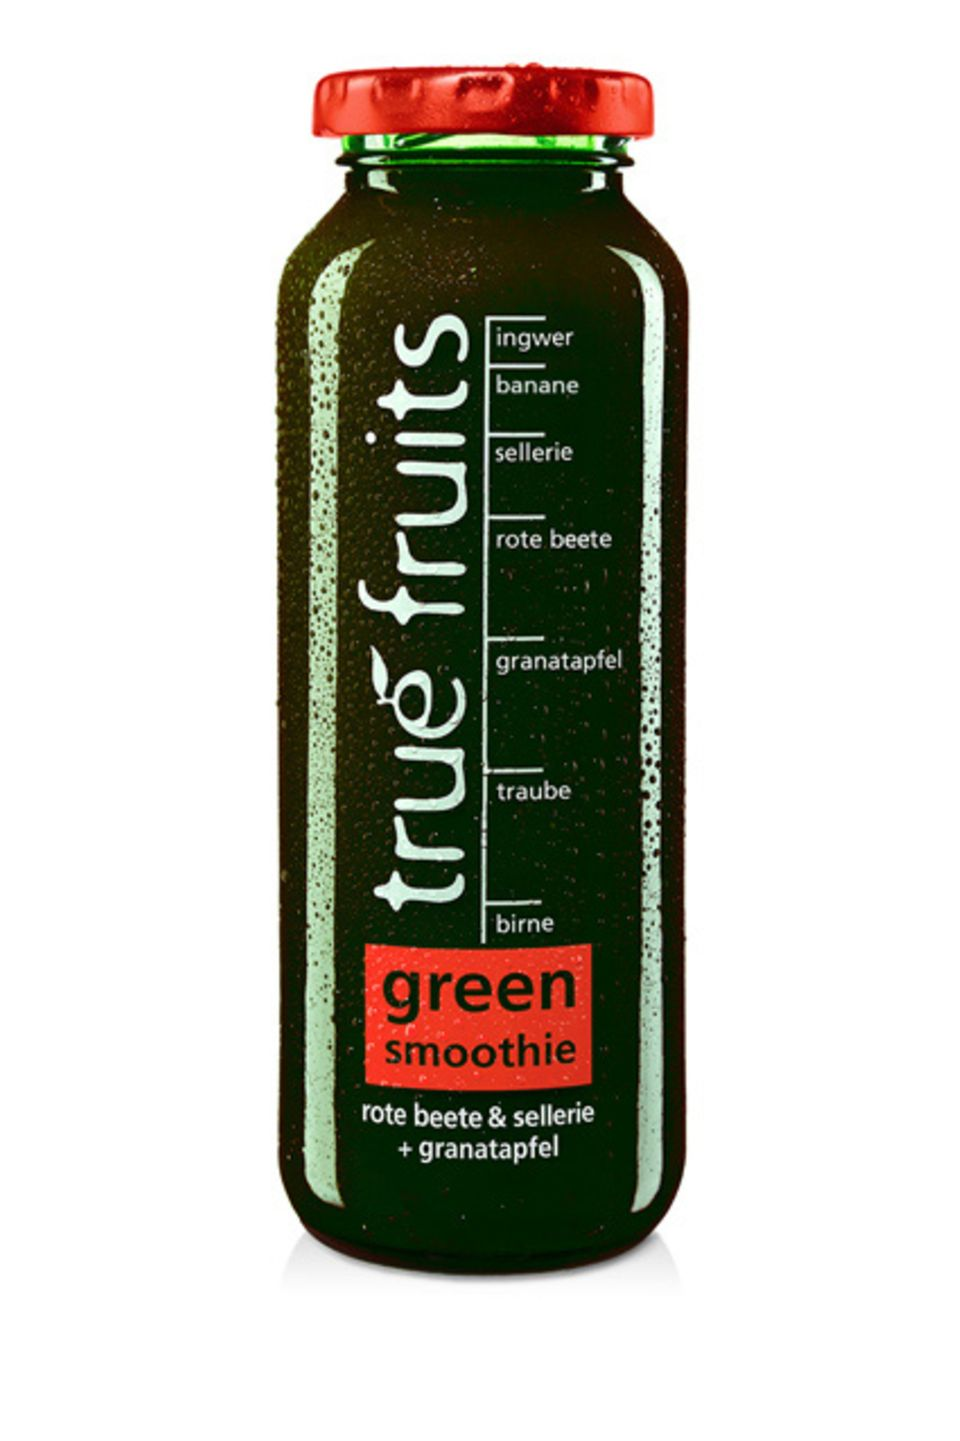 Der neue Green Smoothie no. 3 von true fruits